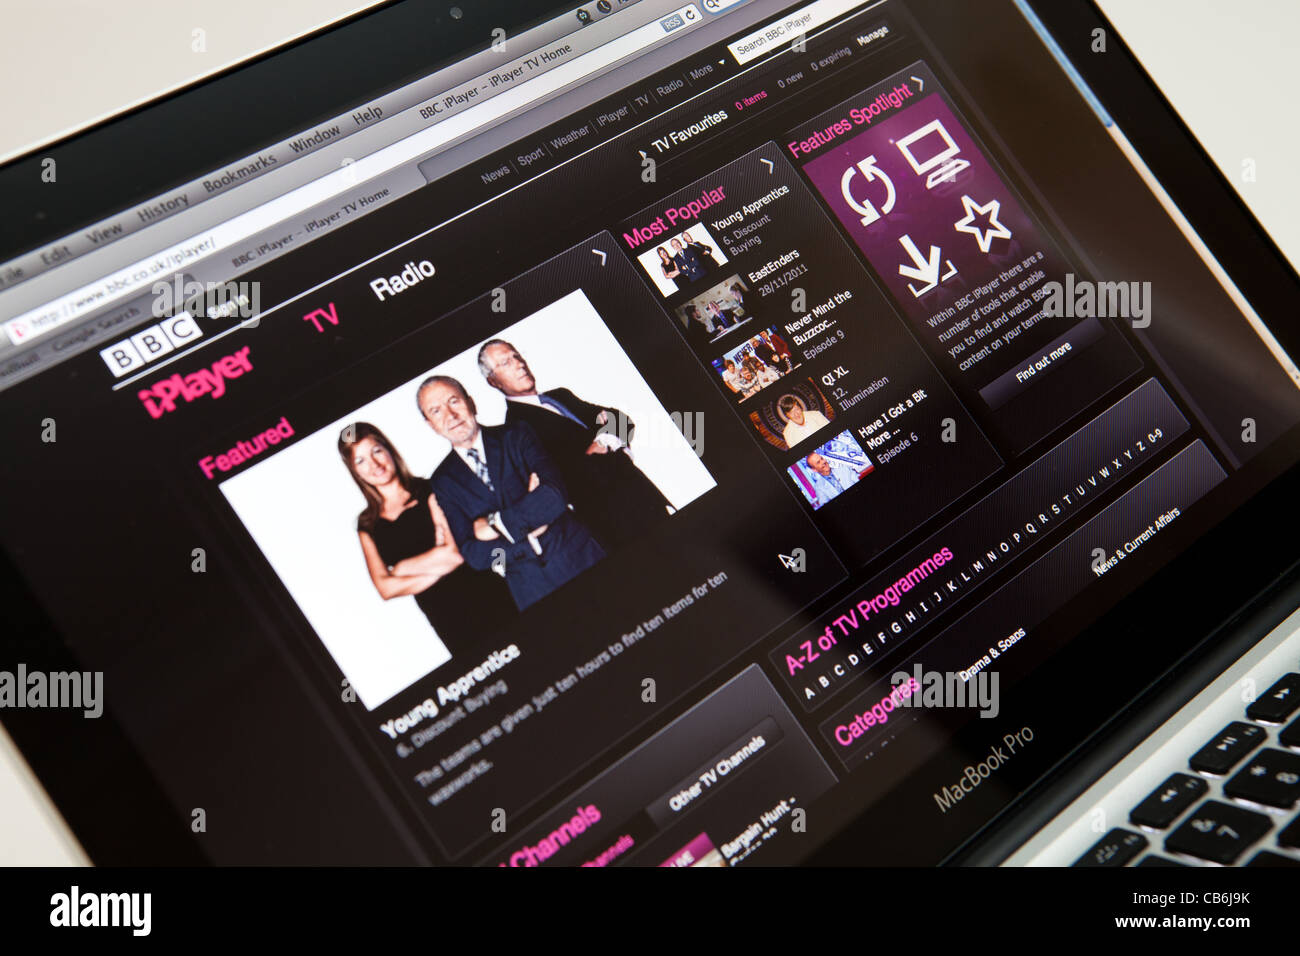 iPlayer Website Screen shot of web page - Stock Image